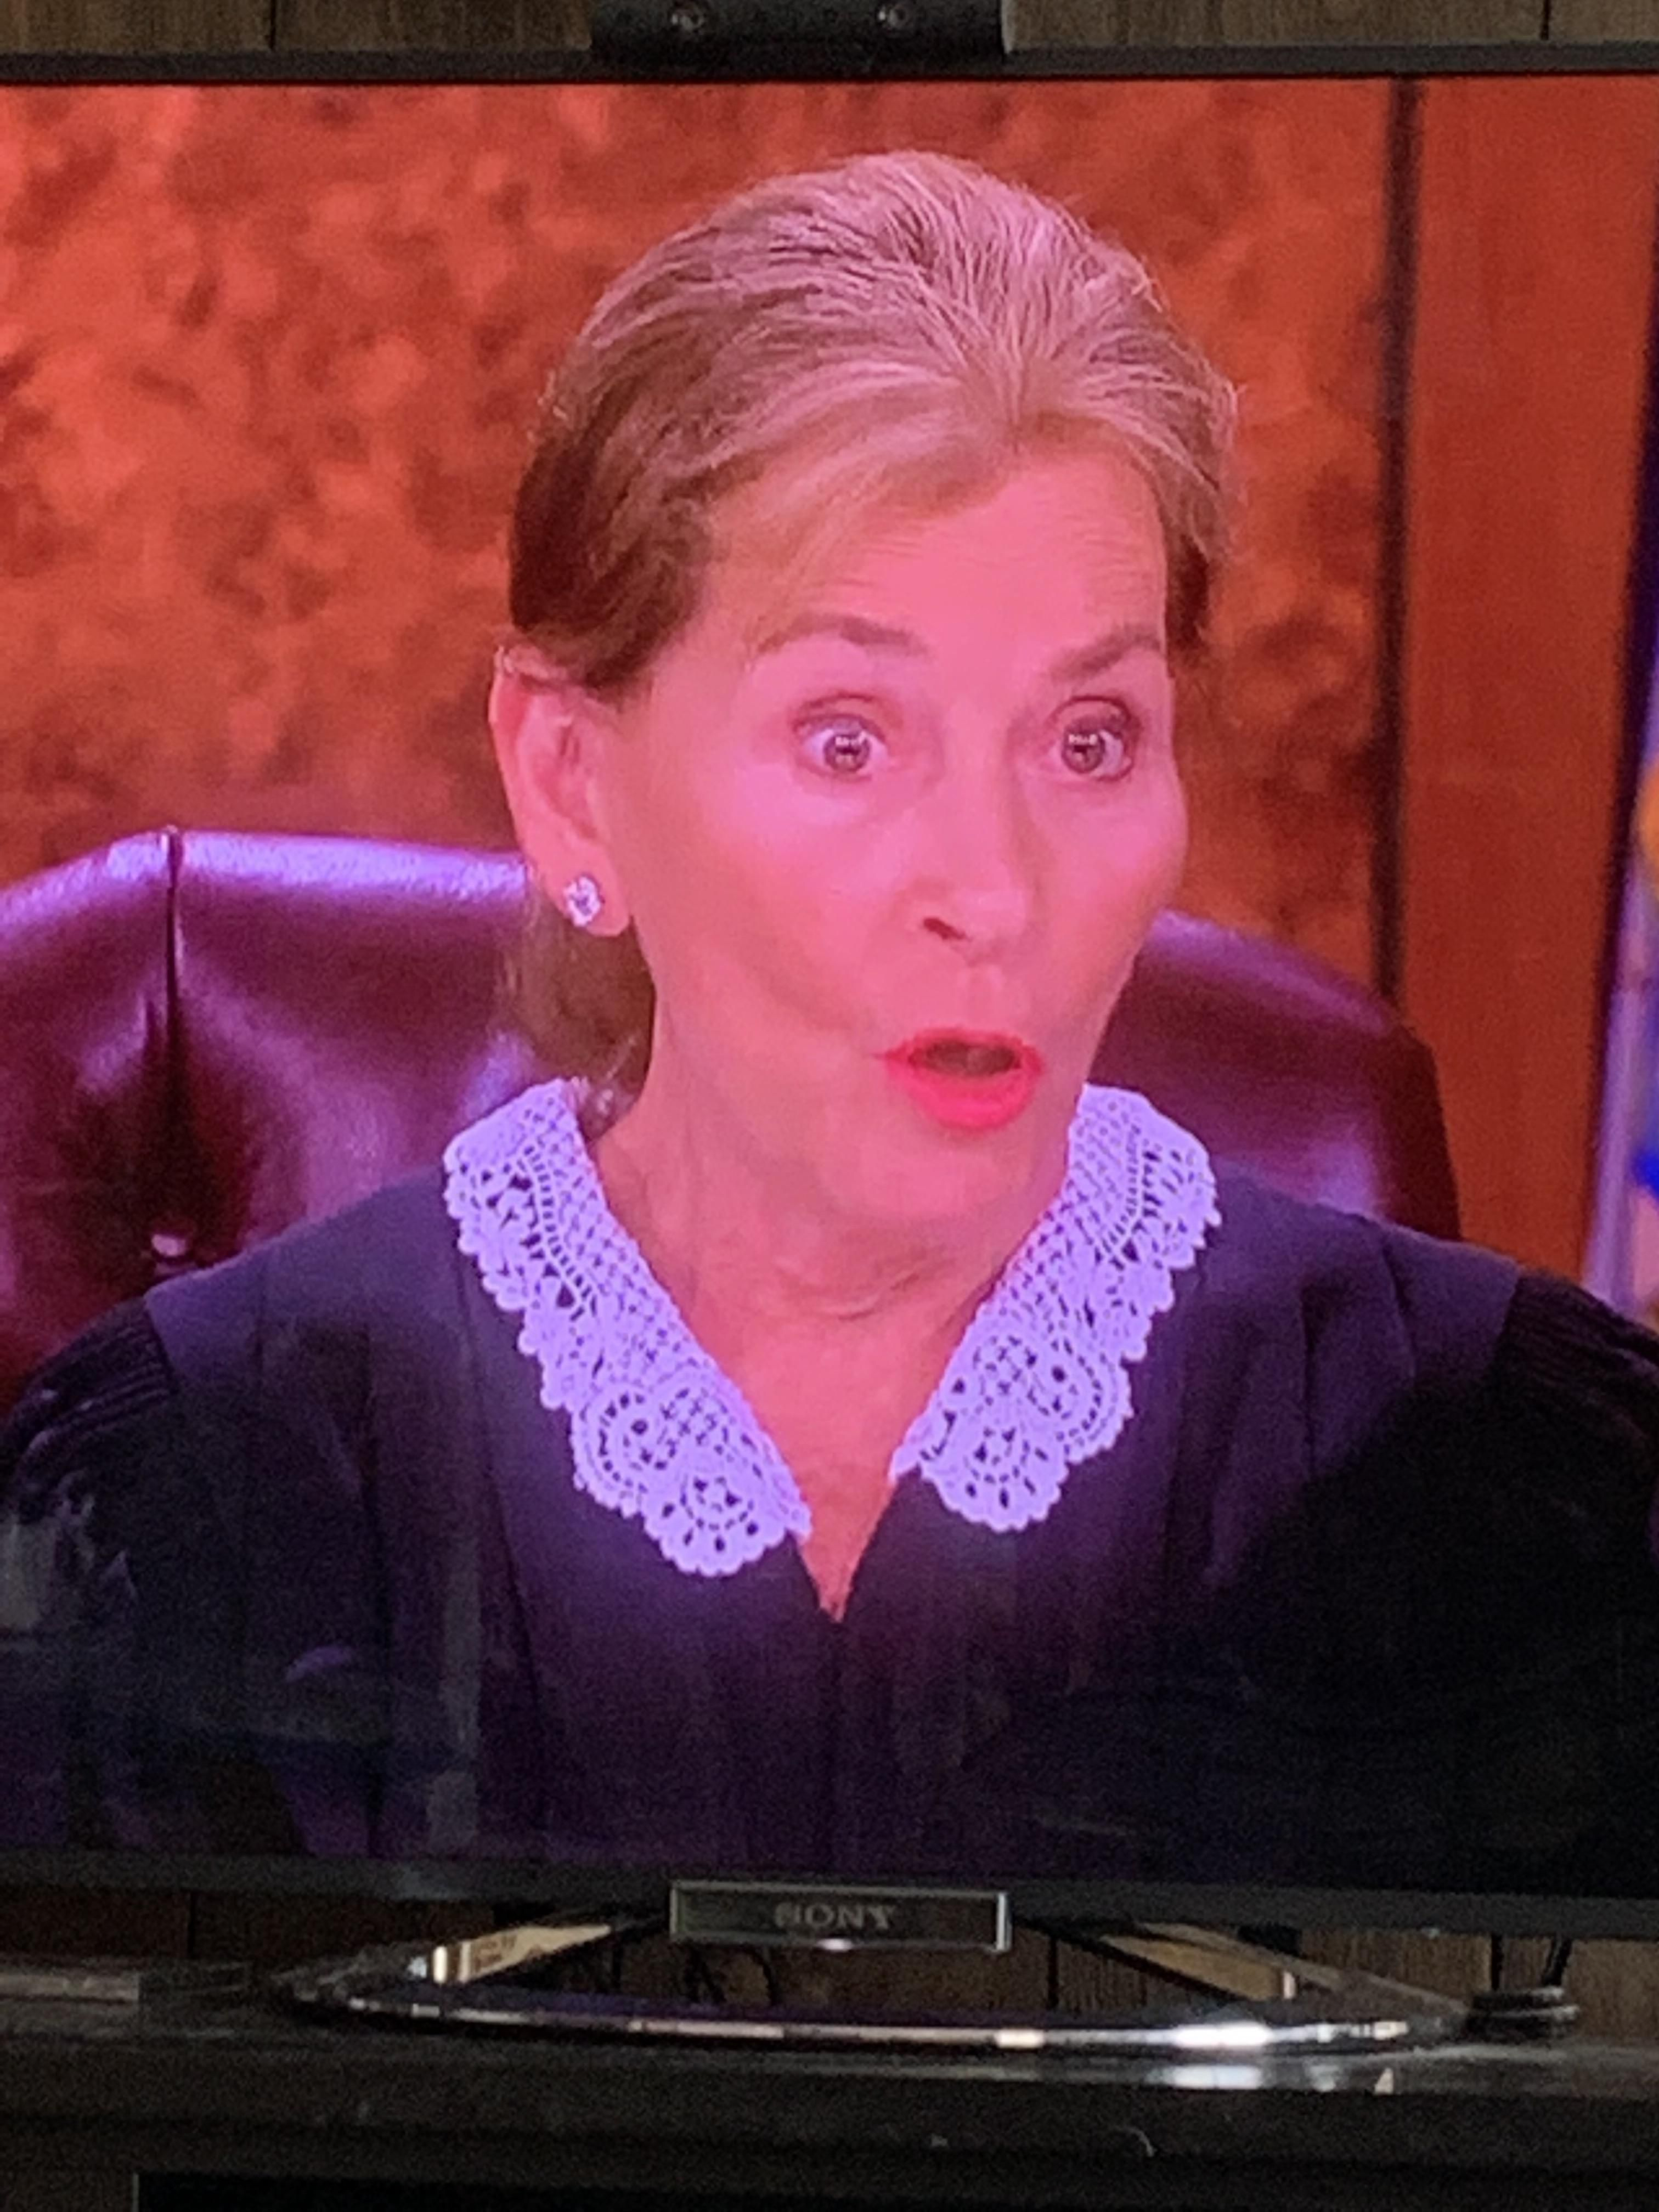 Judge Judy laying down the law with a new young hairstyle /// A shorter low pony tail 5-2019 ...